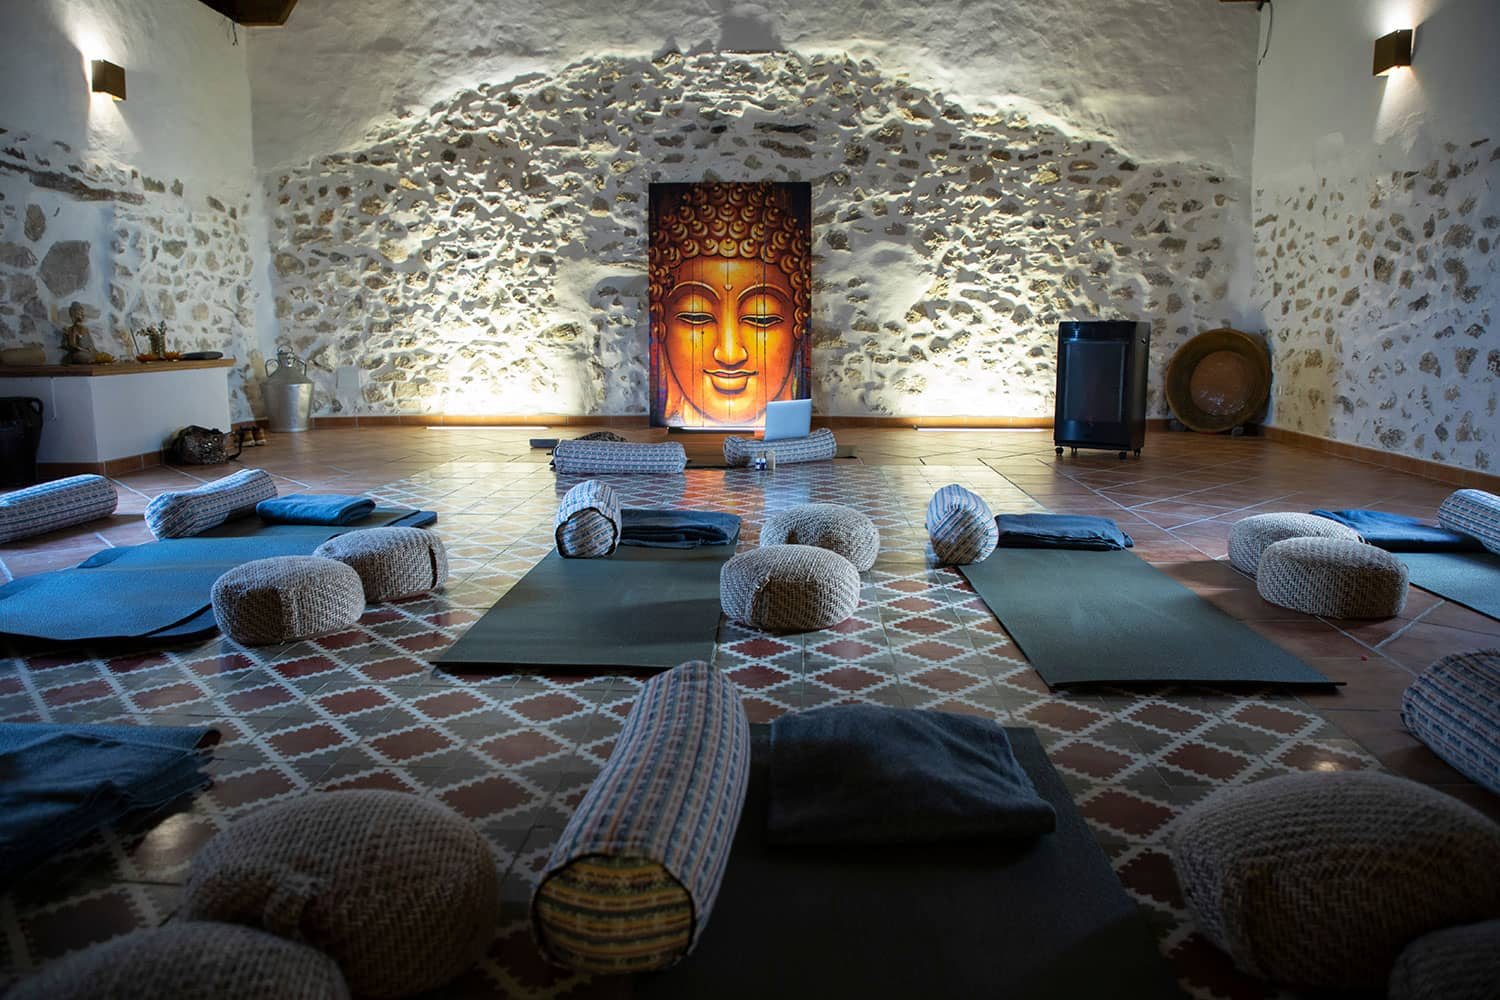 Top 10 Ways a Yoga Pillow Can Support Your Practice